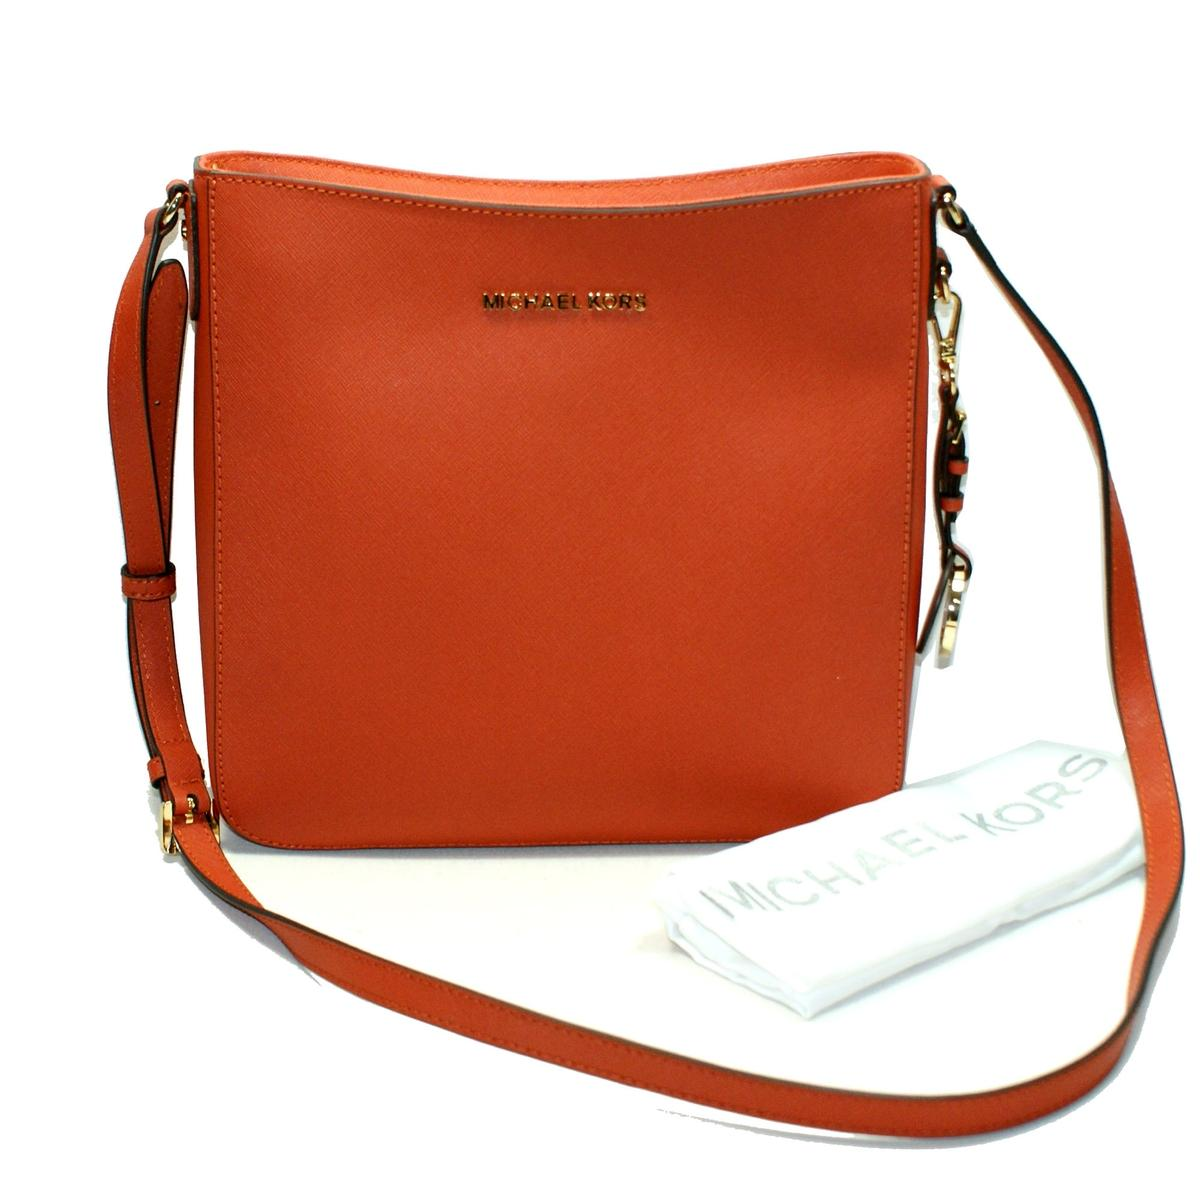 81587e9724 ... Leather Messenger/ Crossbody Bag. CLICK THUMBNAIL TO ZOOM. Found ...